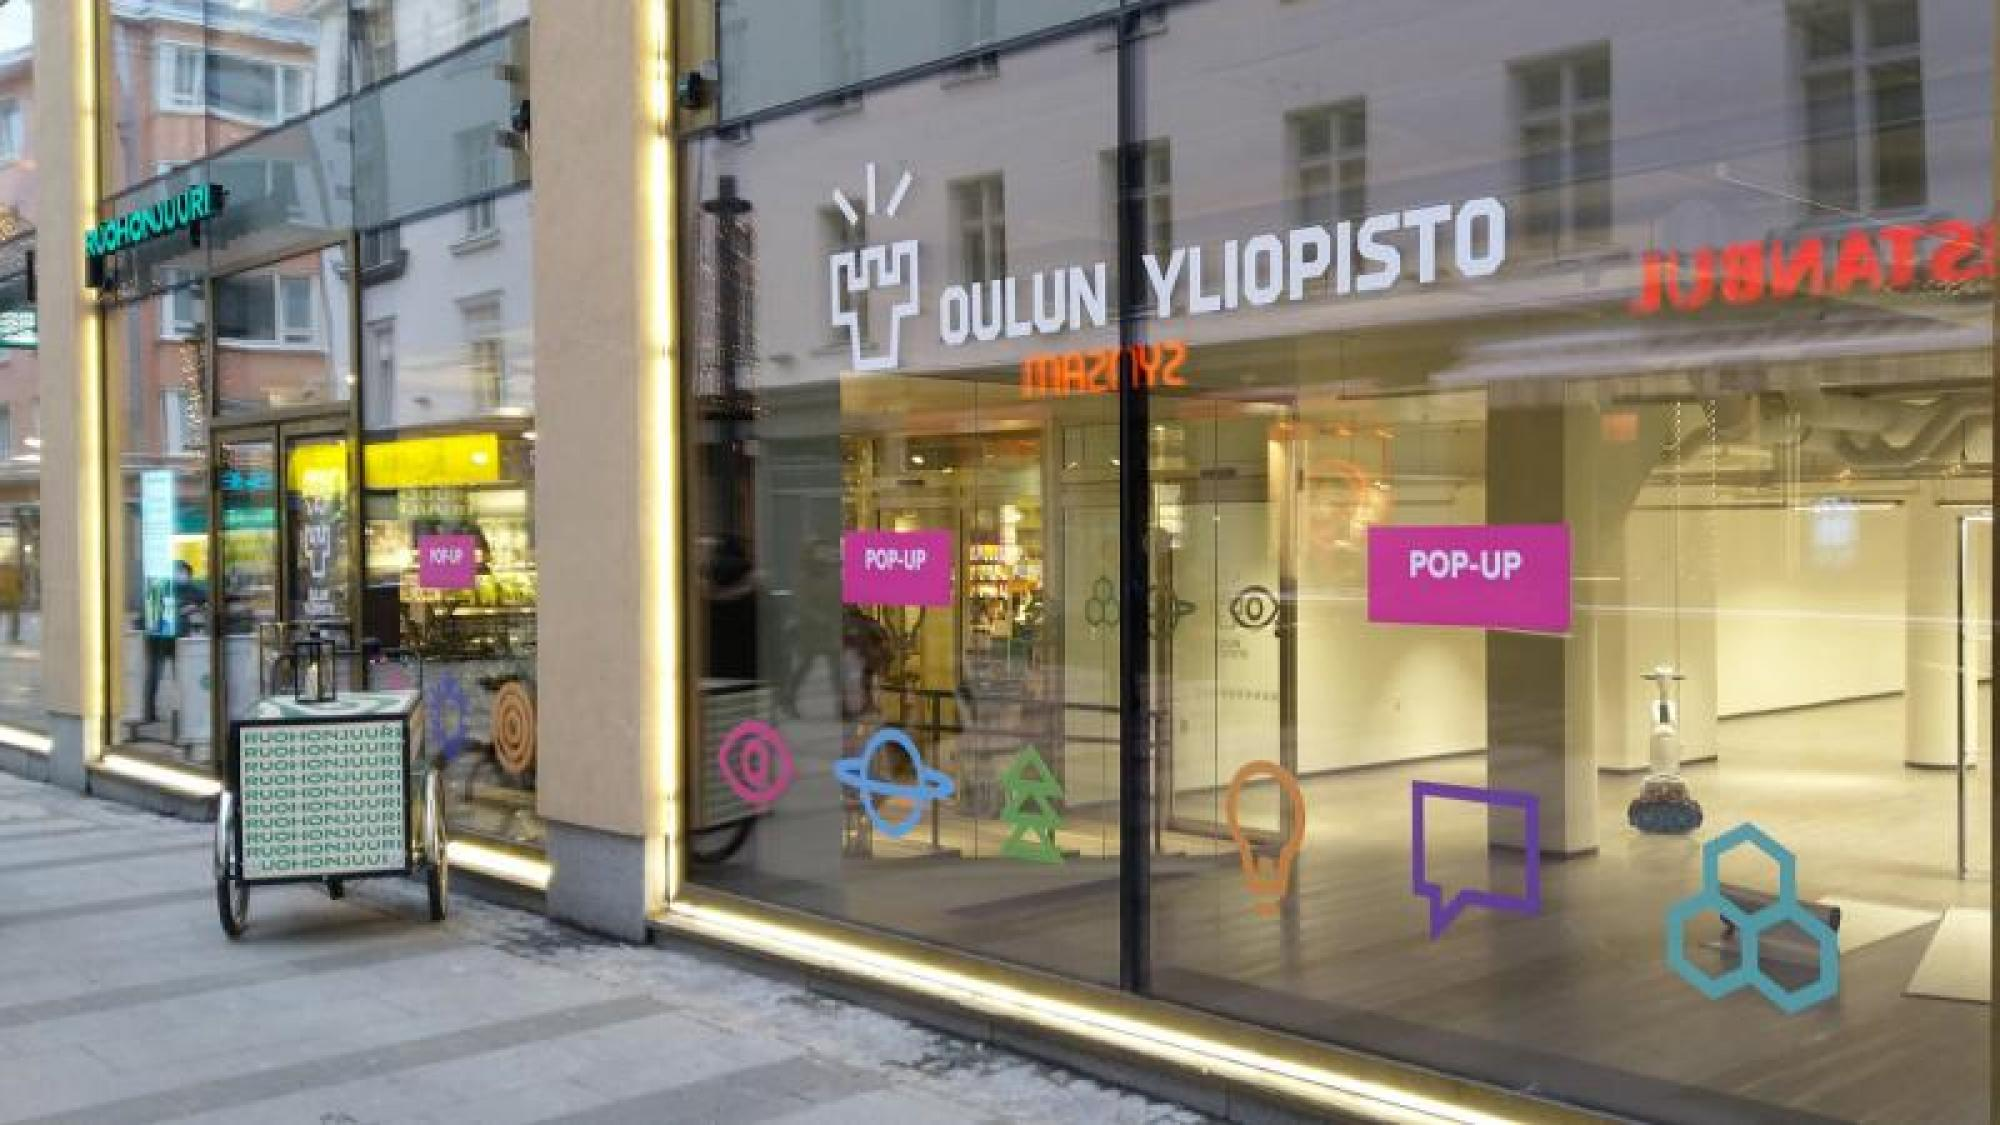 Window of the University of Oulu Pop-Up Space in the city center